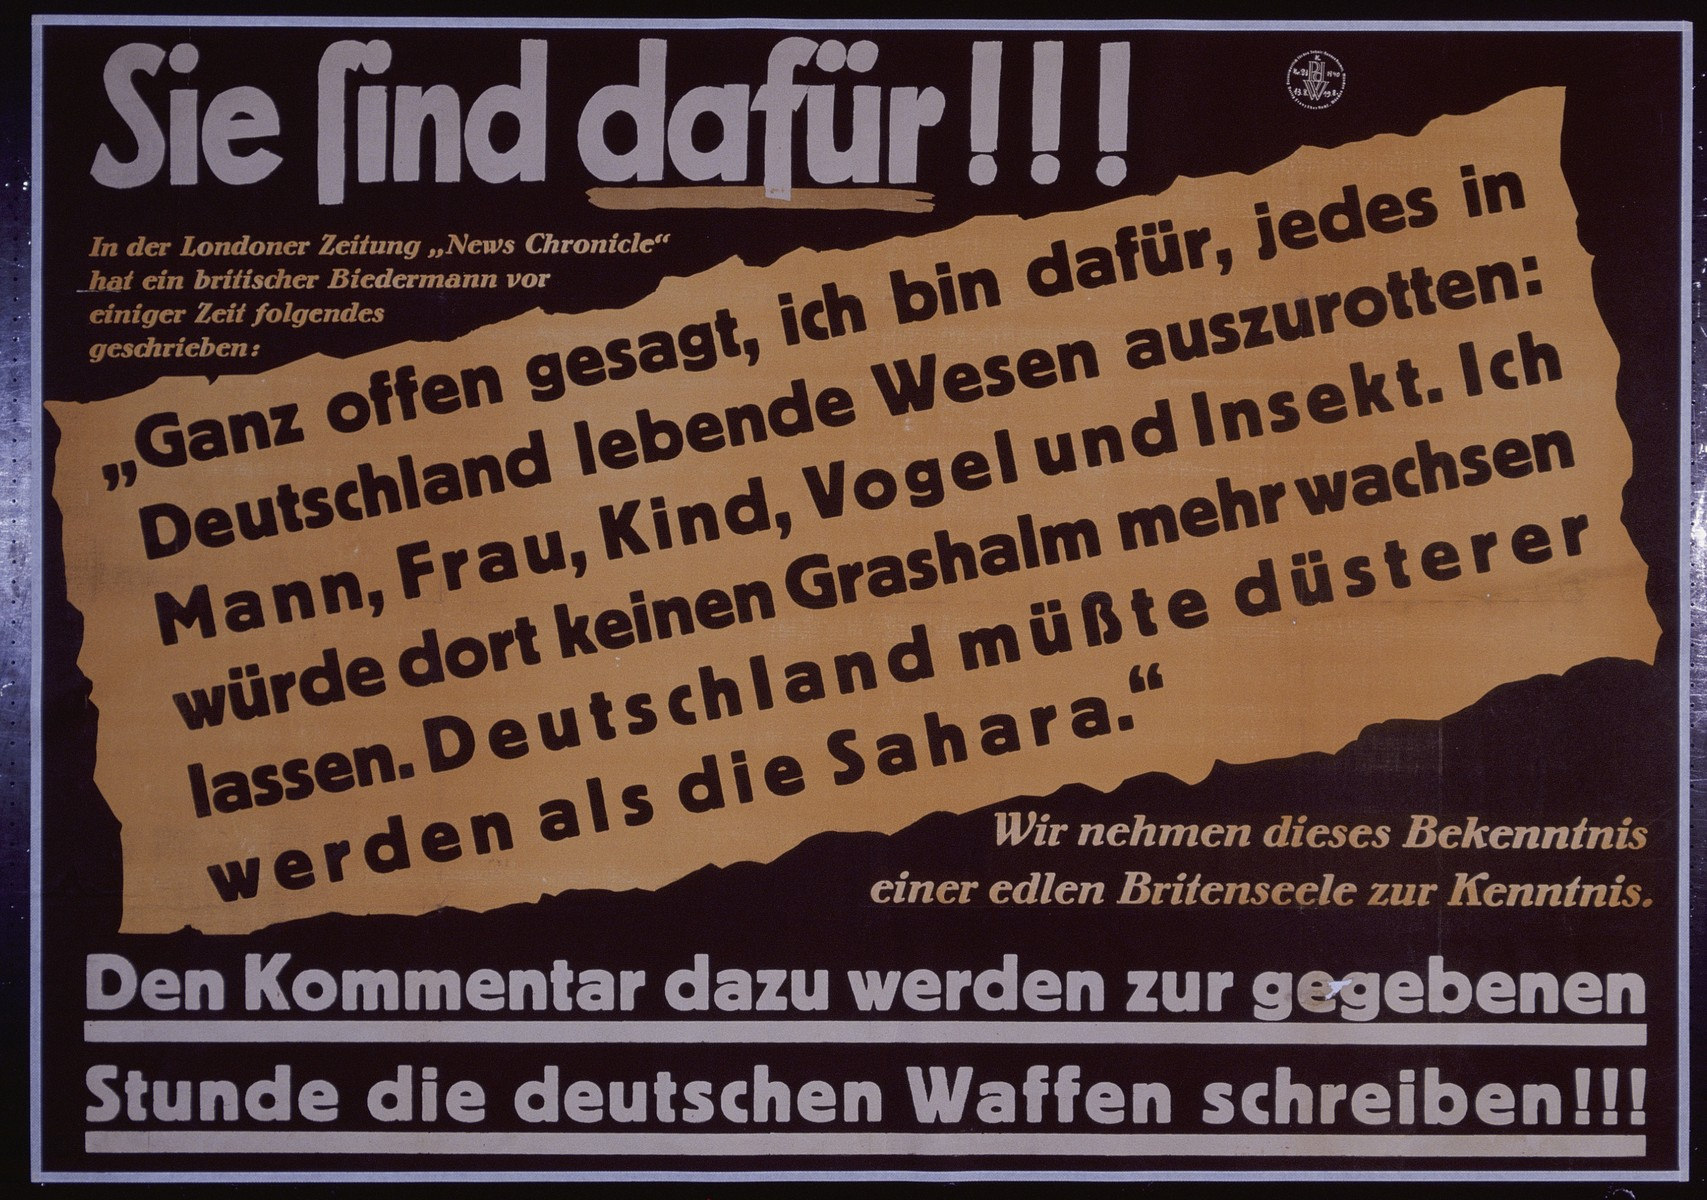 "Nazi propaganda poster entitled, ""Sie sind dafur,"" issued by the ""Parole der Woche,"" a wall newspaper (Wandzeitung) published by the National Socialist Party propaganda office in Munich."